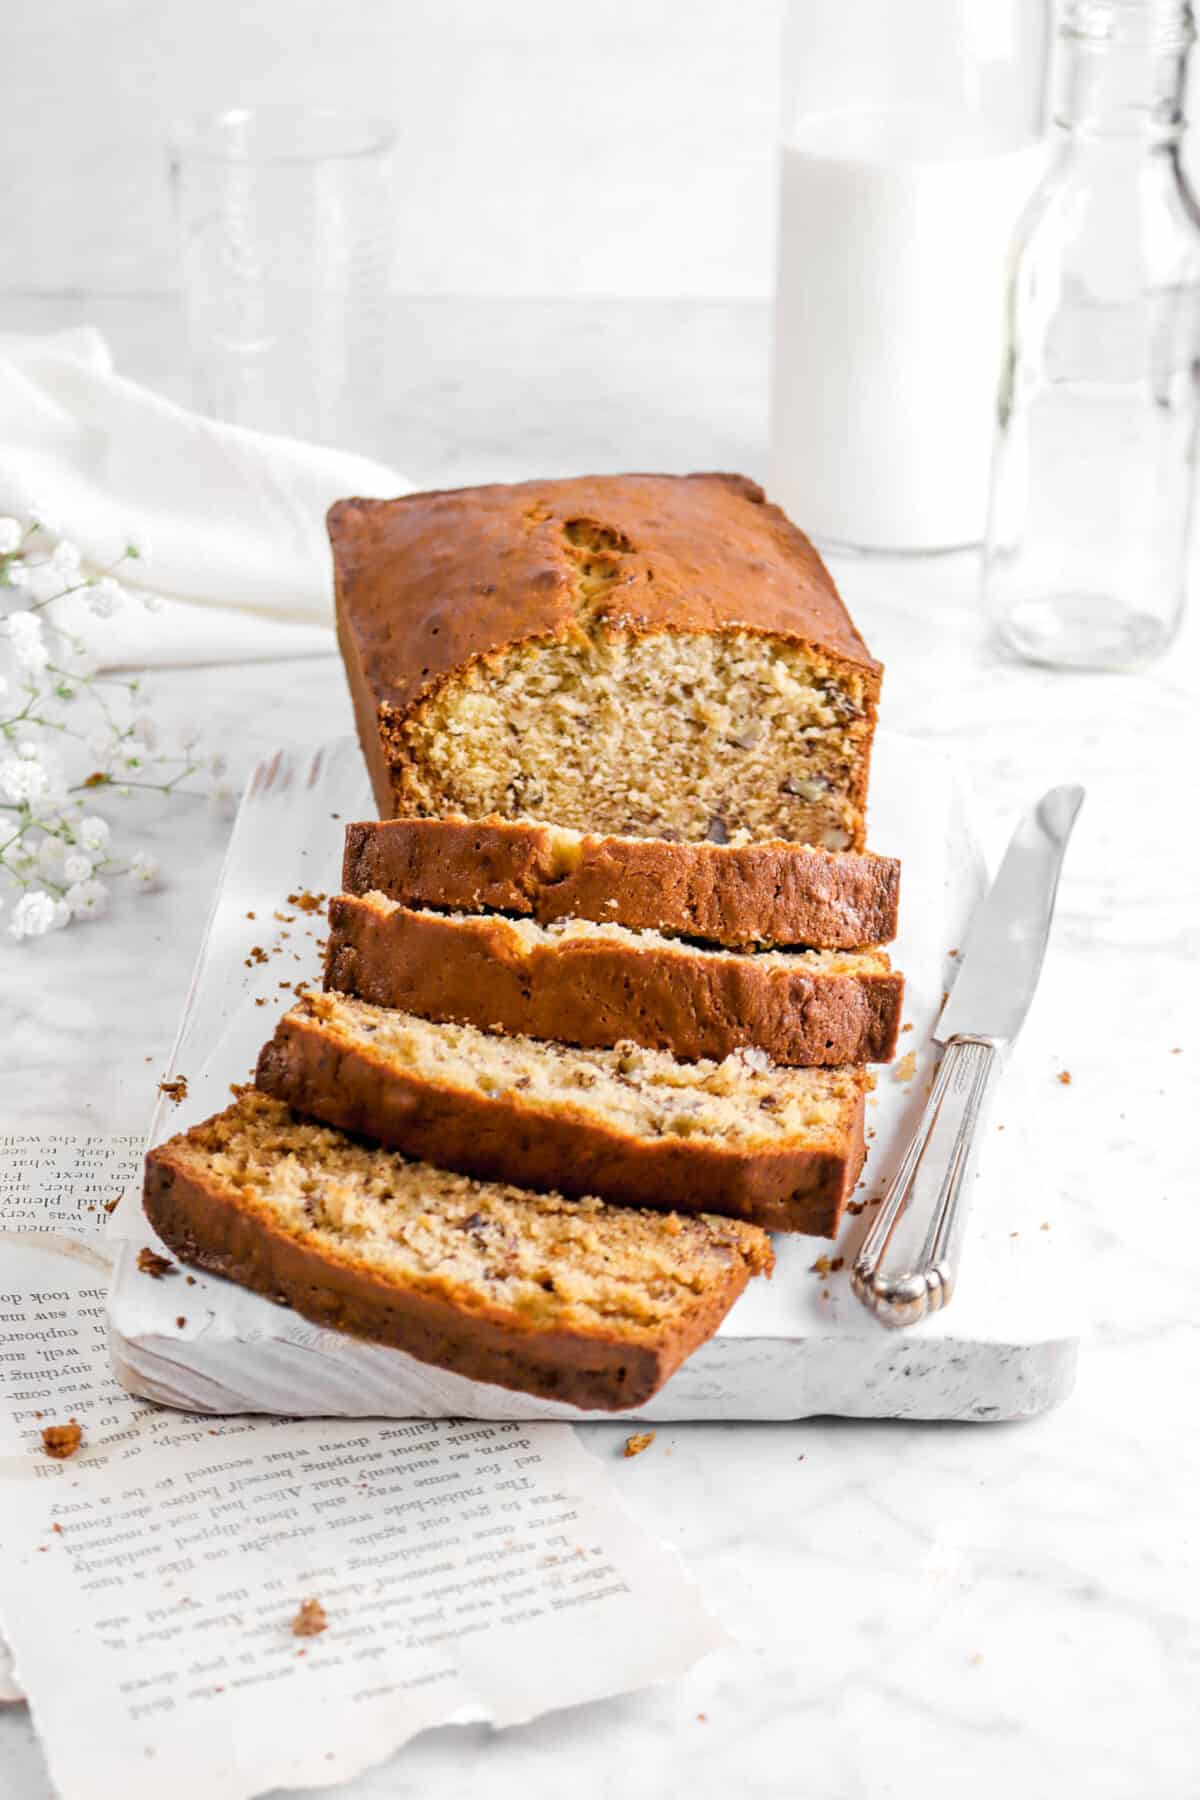 banana bread with four slices in front on white board with knife and book pages